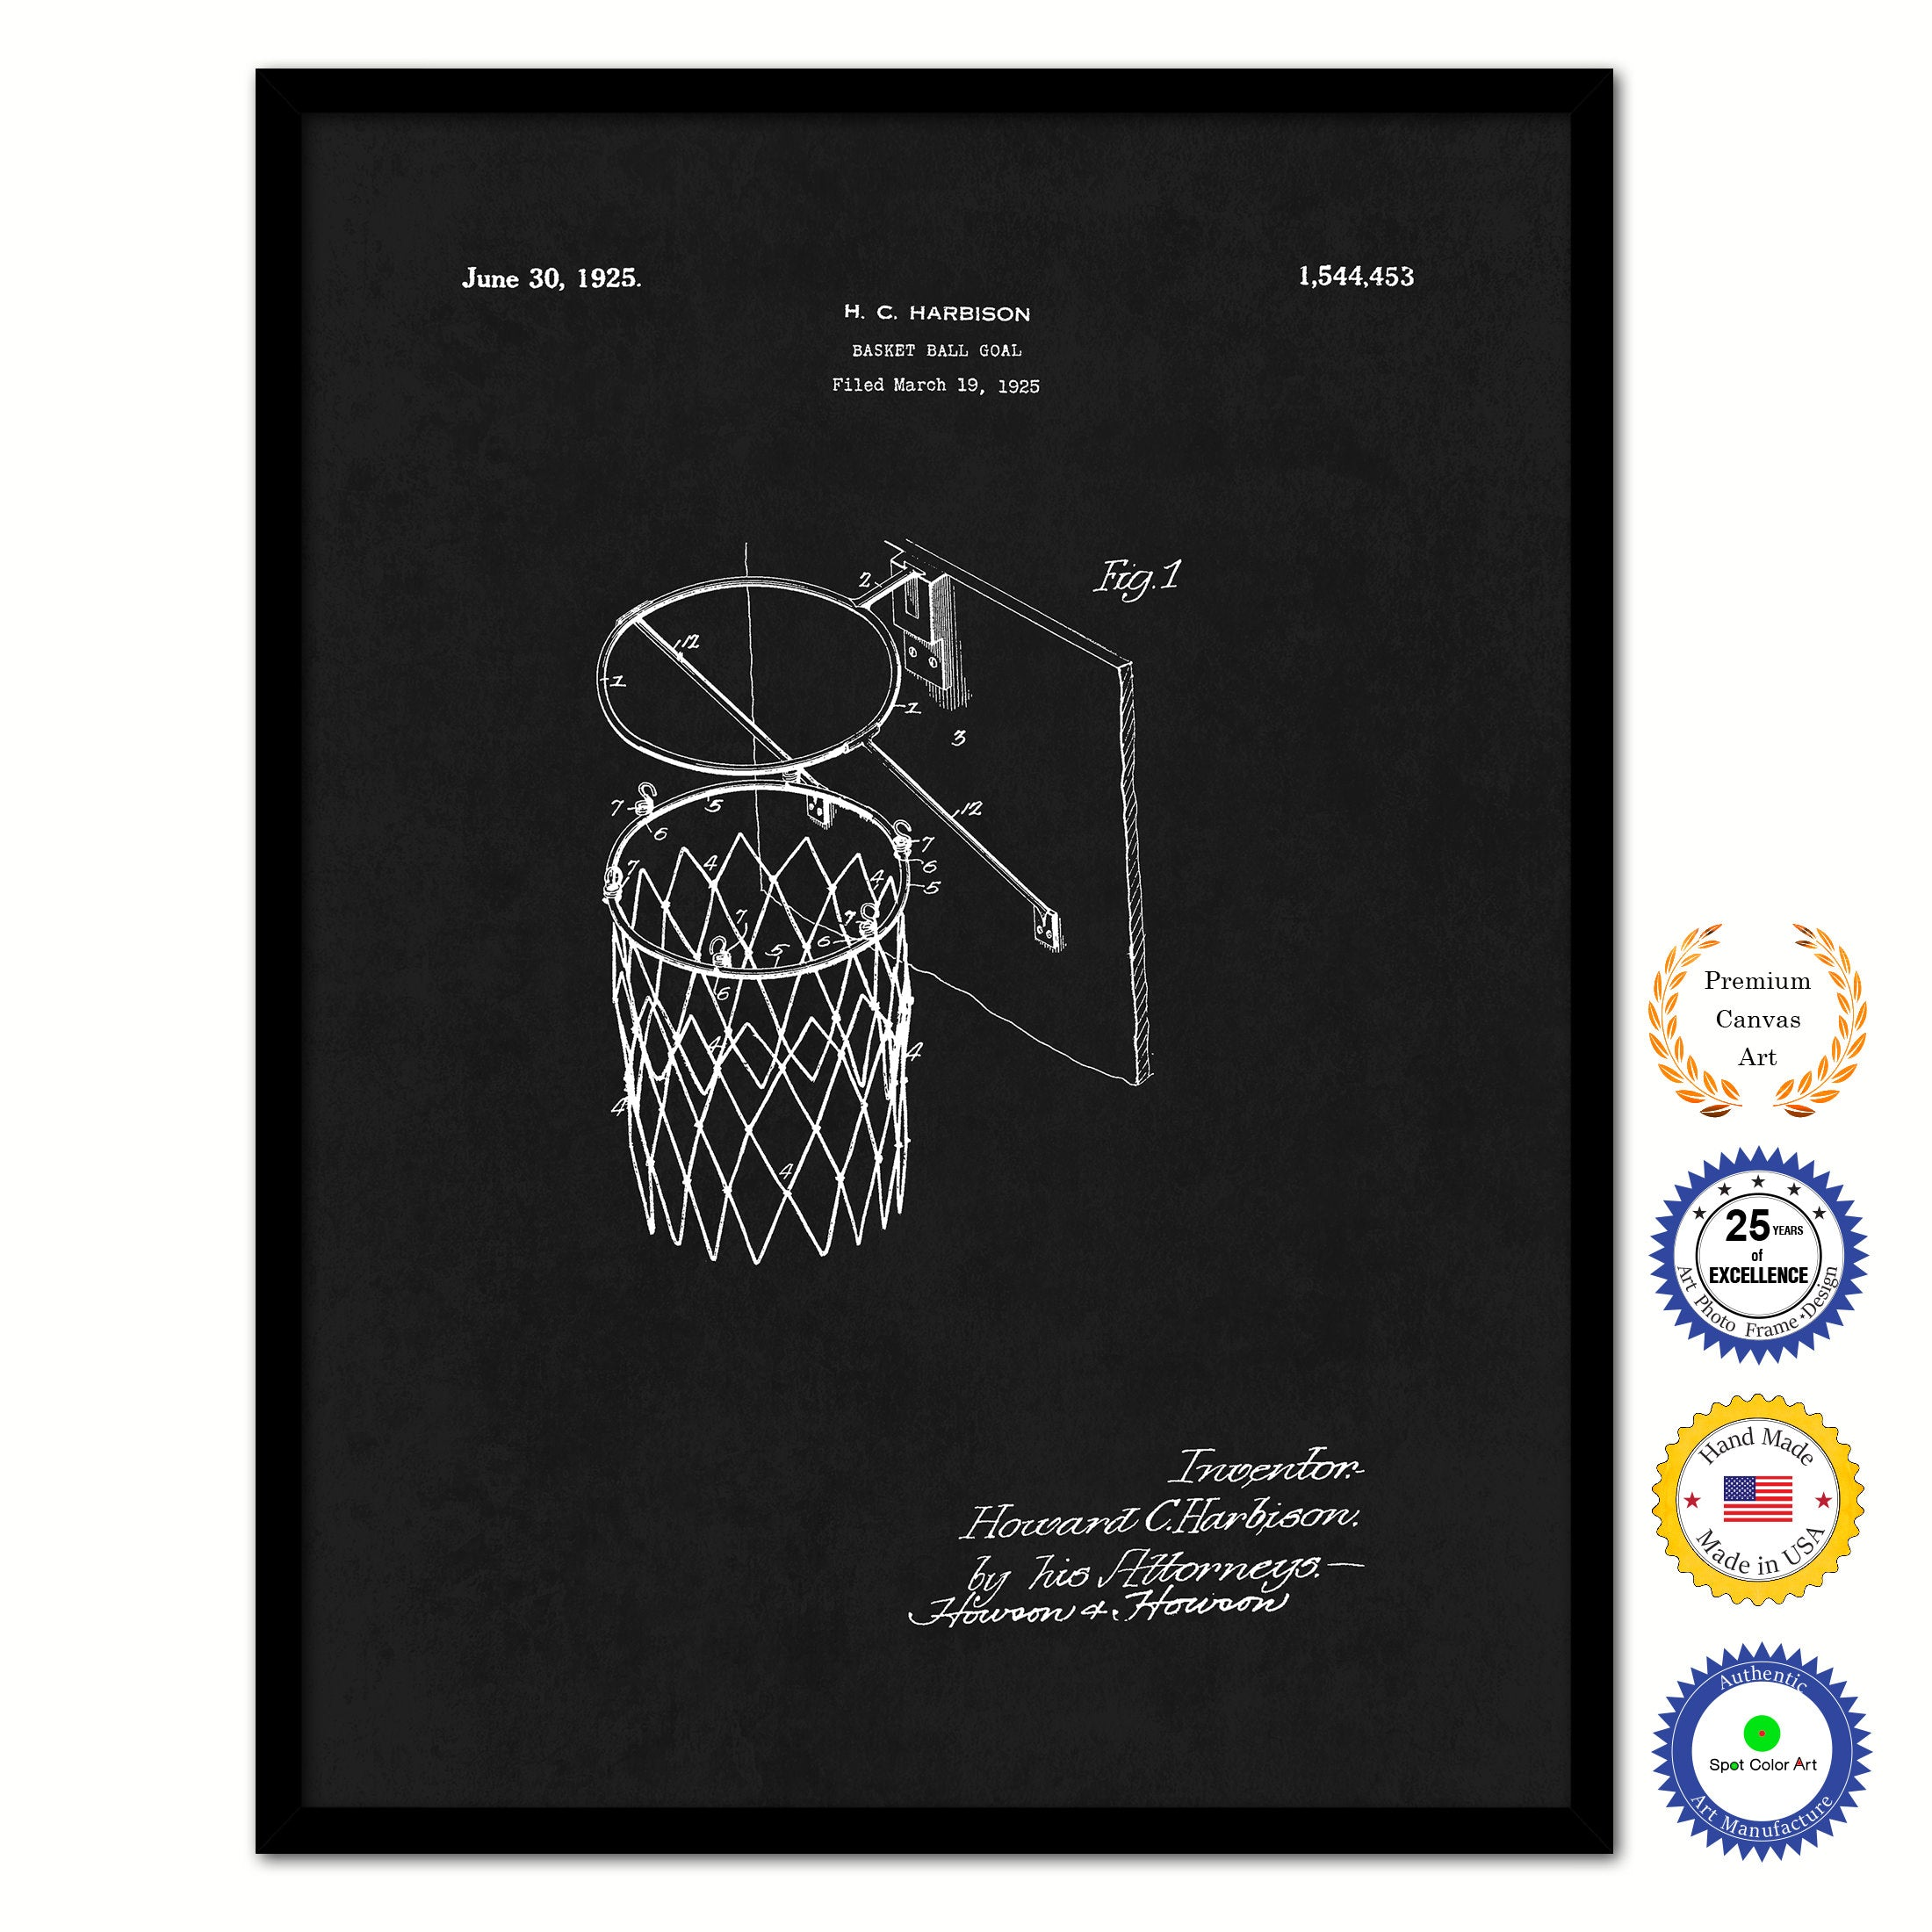 1925 Basket Ball Goal Old Patent Art Print on Canvas Custom Framed Vintage Home Decor Wall Decoration Great for Gifts